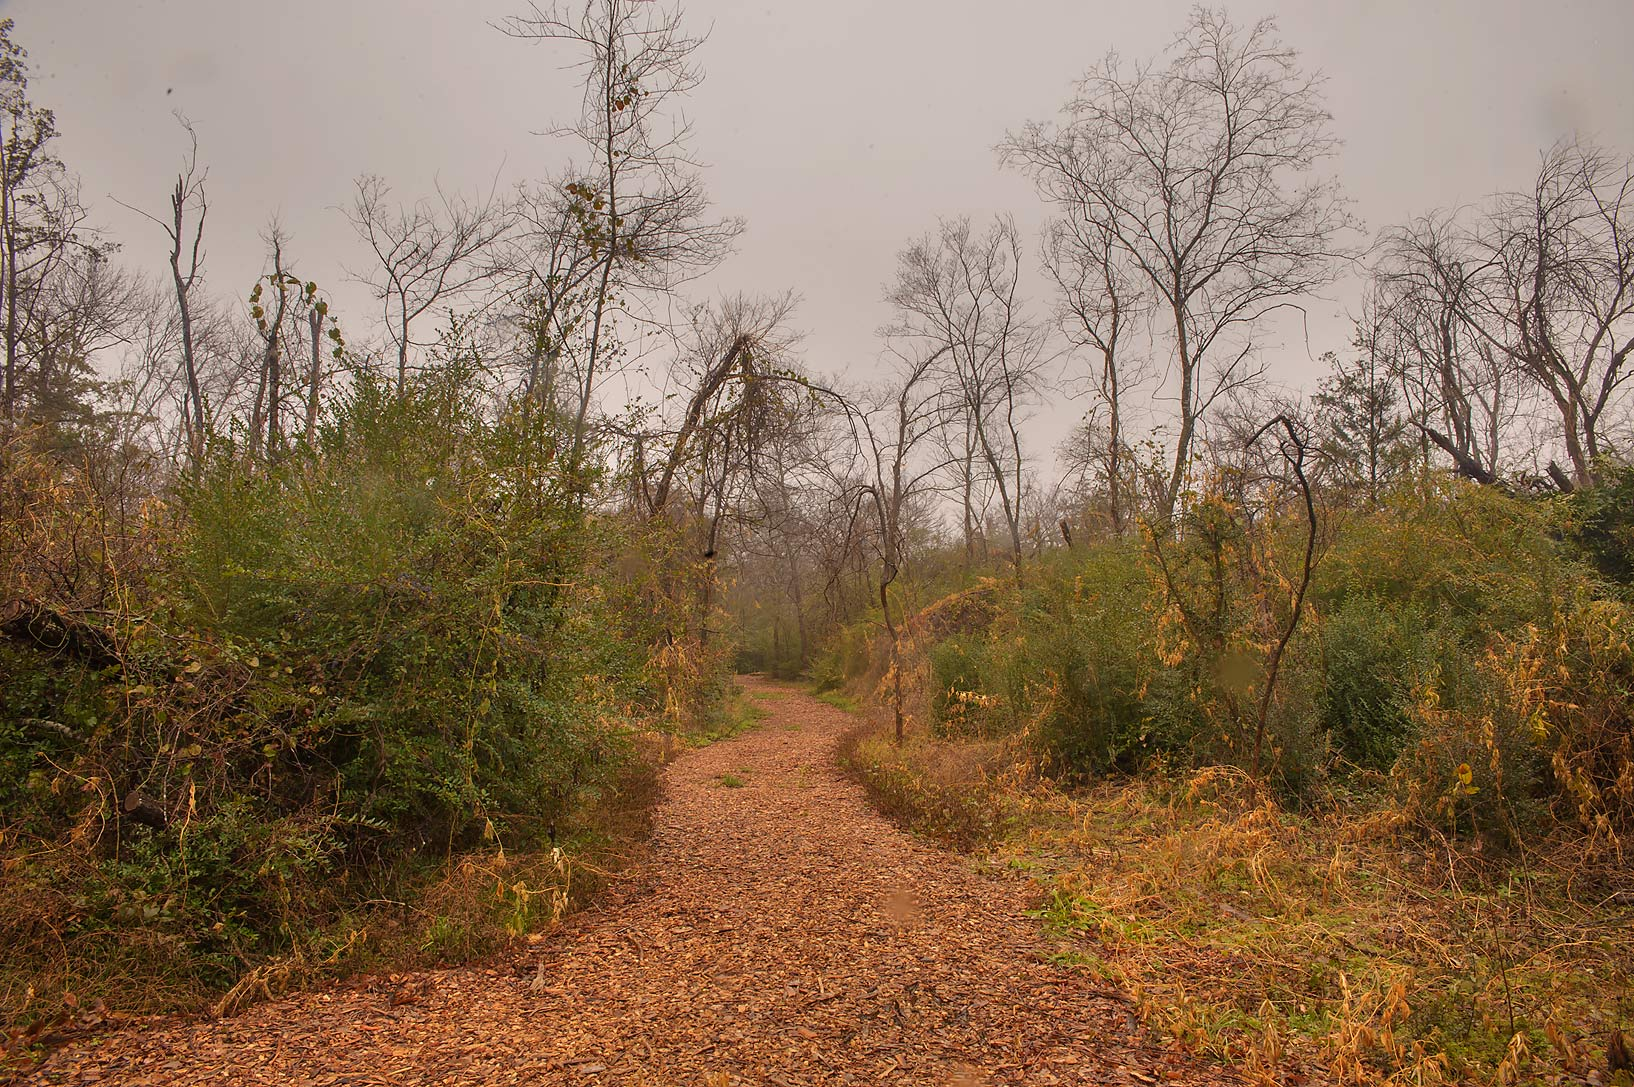 Unkempt trail in Bee Creek Park at rain. College Station, Texas